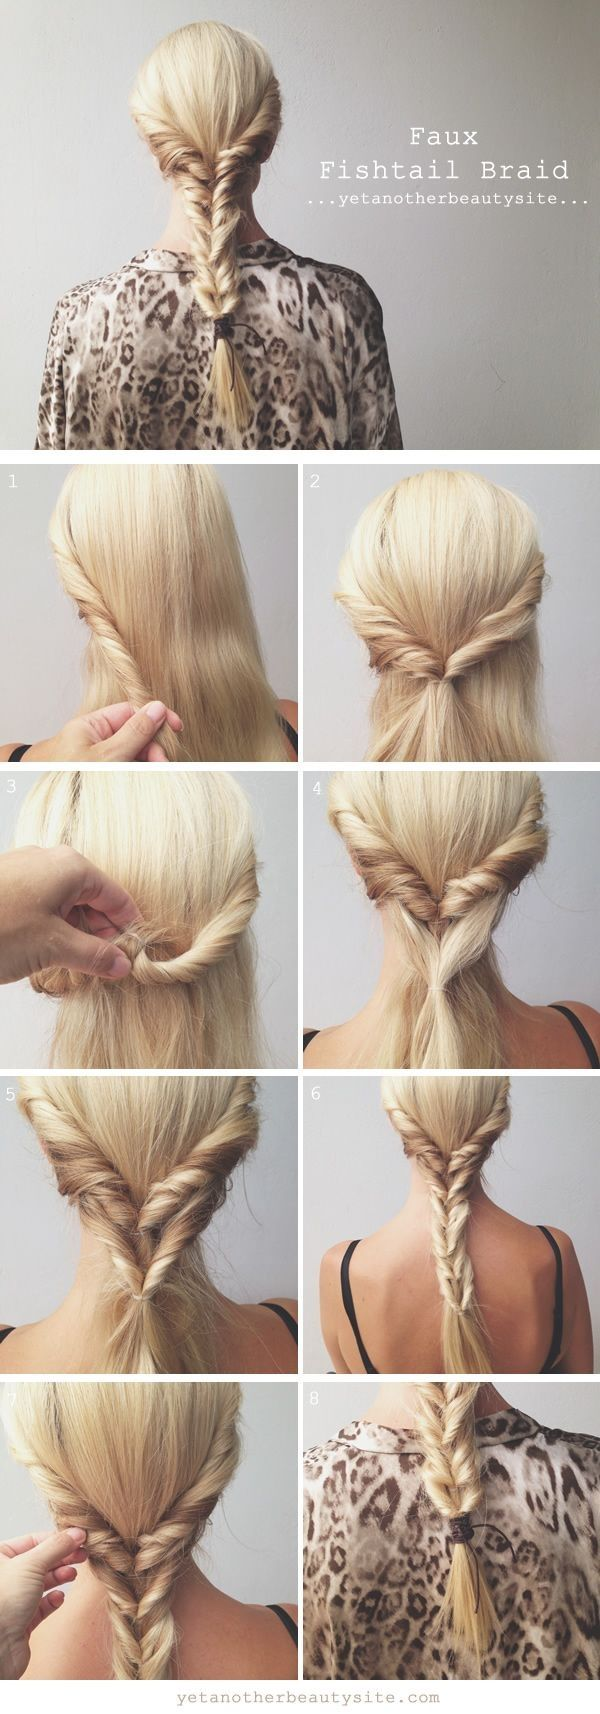 Twist with a braid